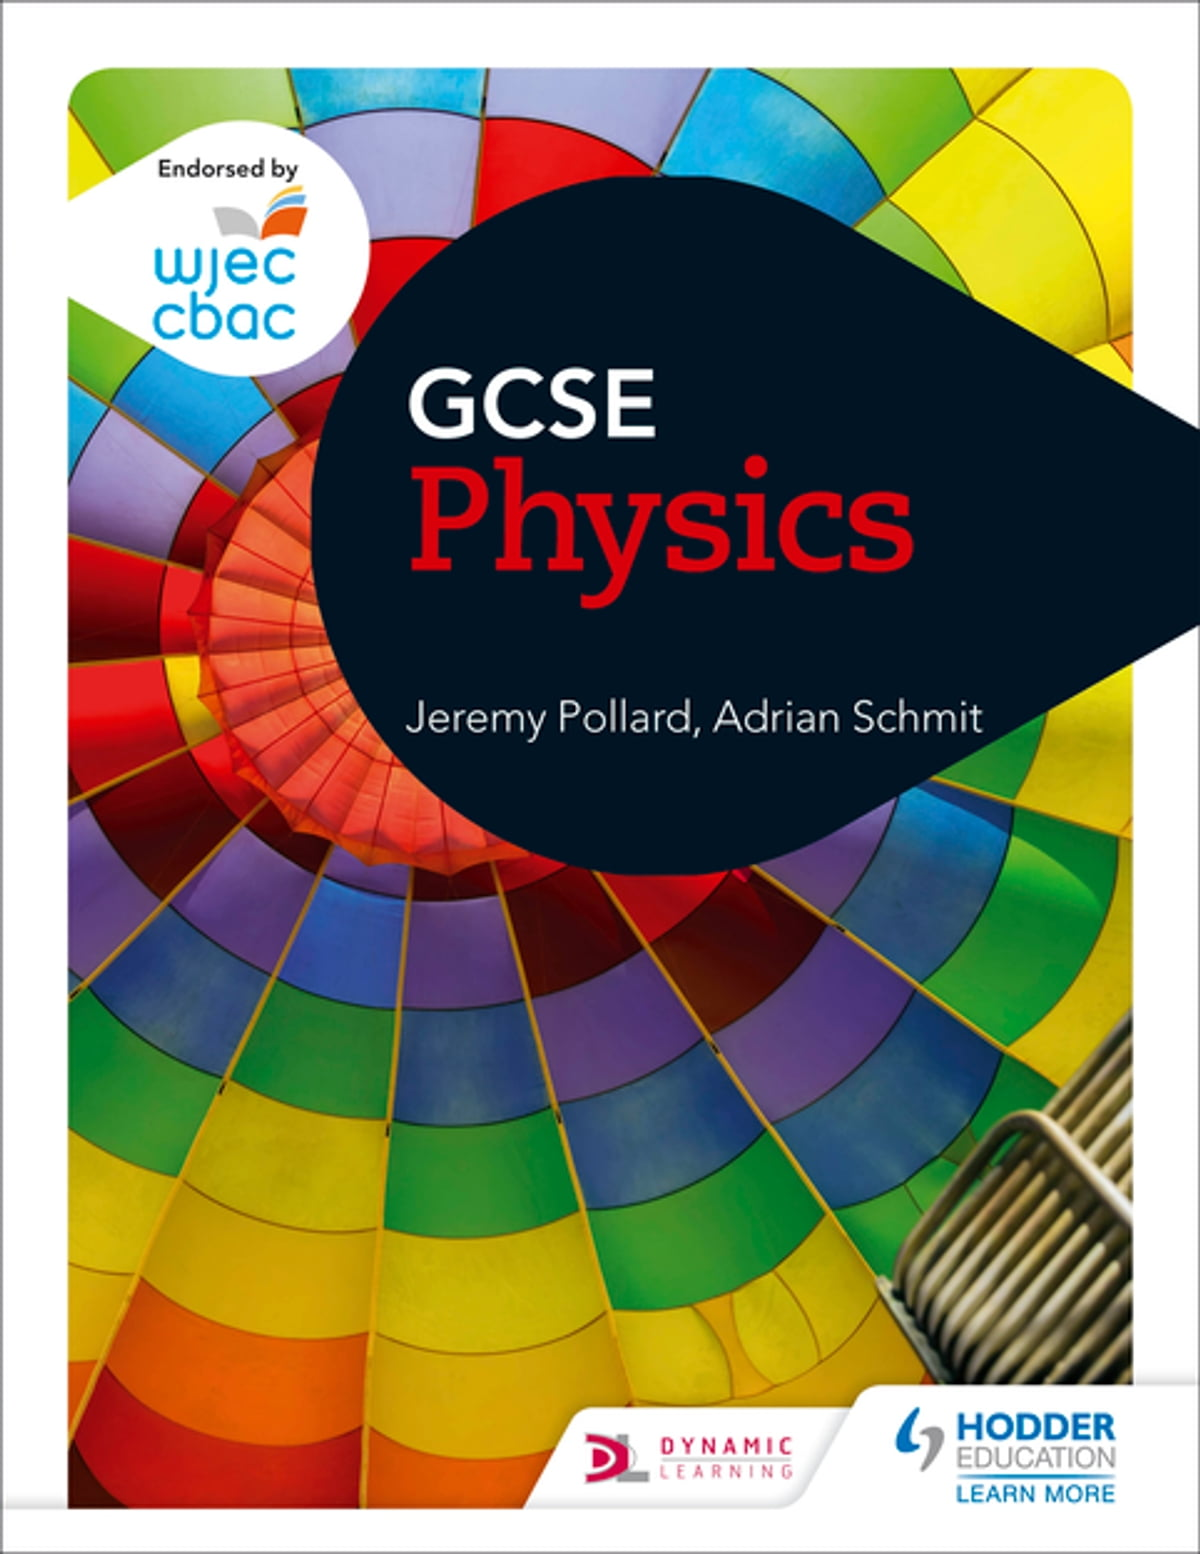 Wjec Gcse Physics Ebook Di Jeremy Pollard 9781471868788 Rakuten Kobo This Would Be Part C Ofsection 2 Electricity Of The Igcse